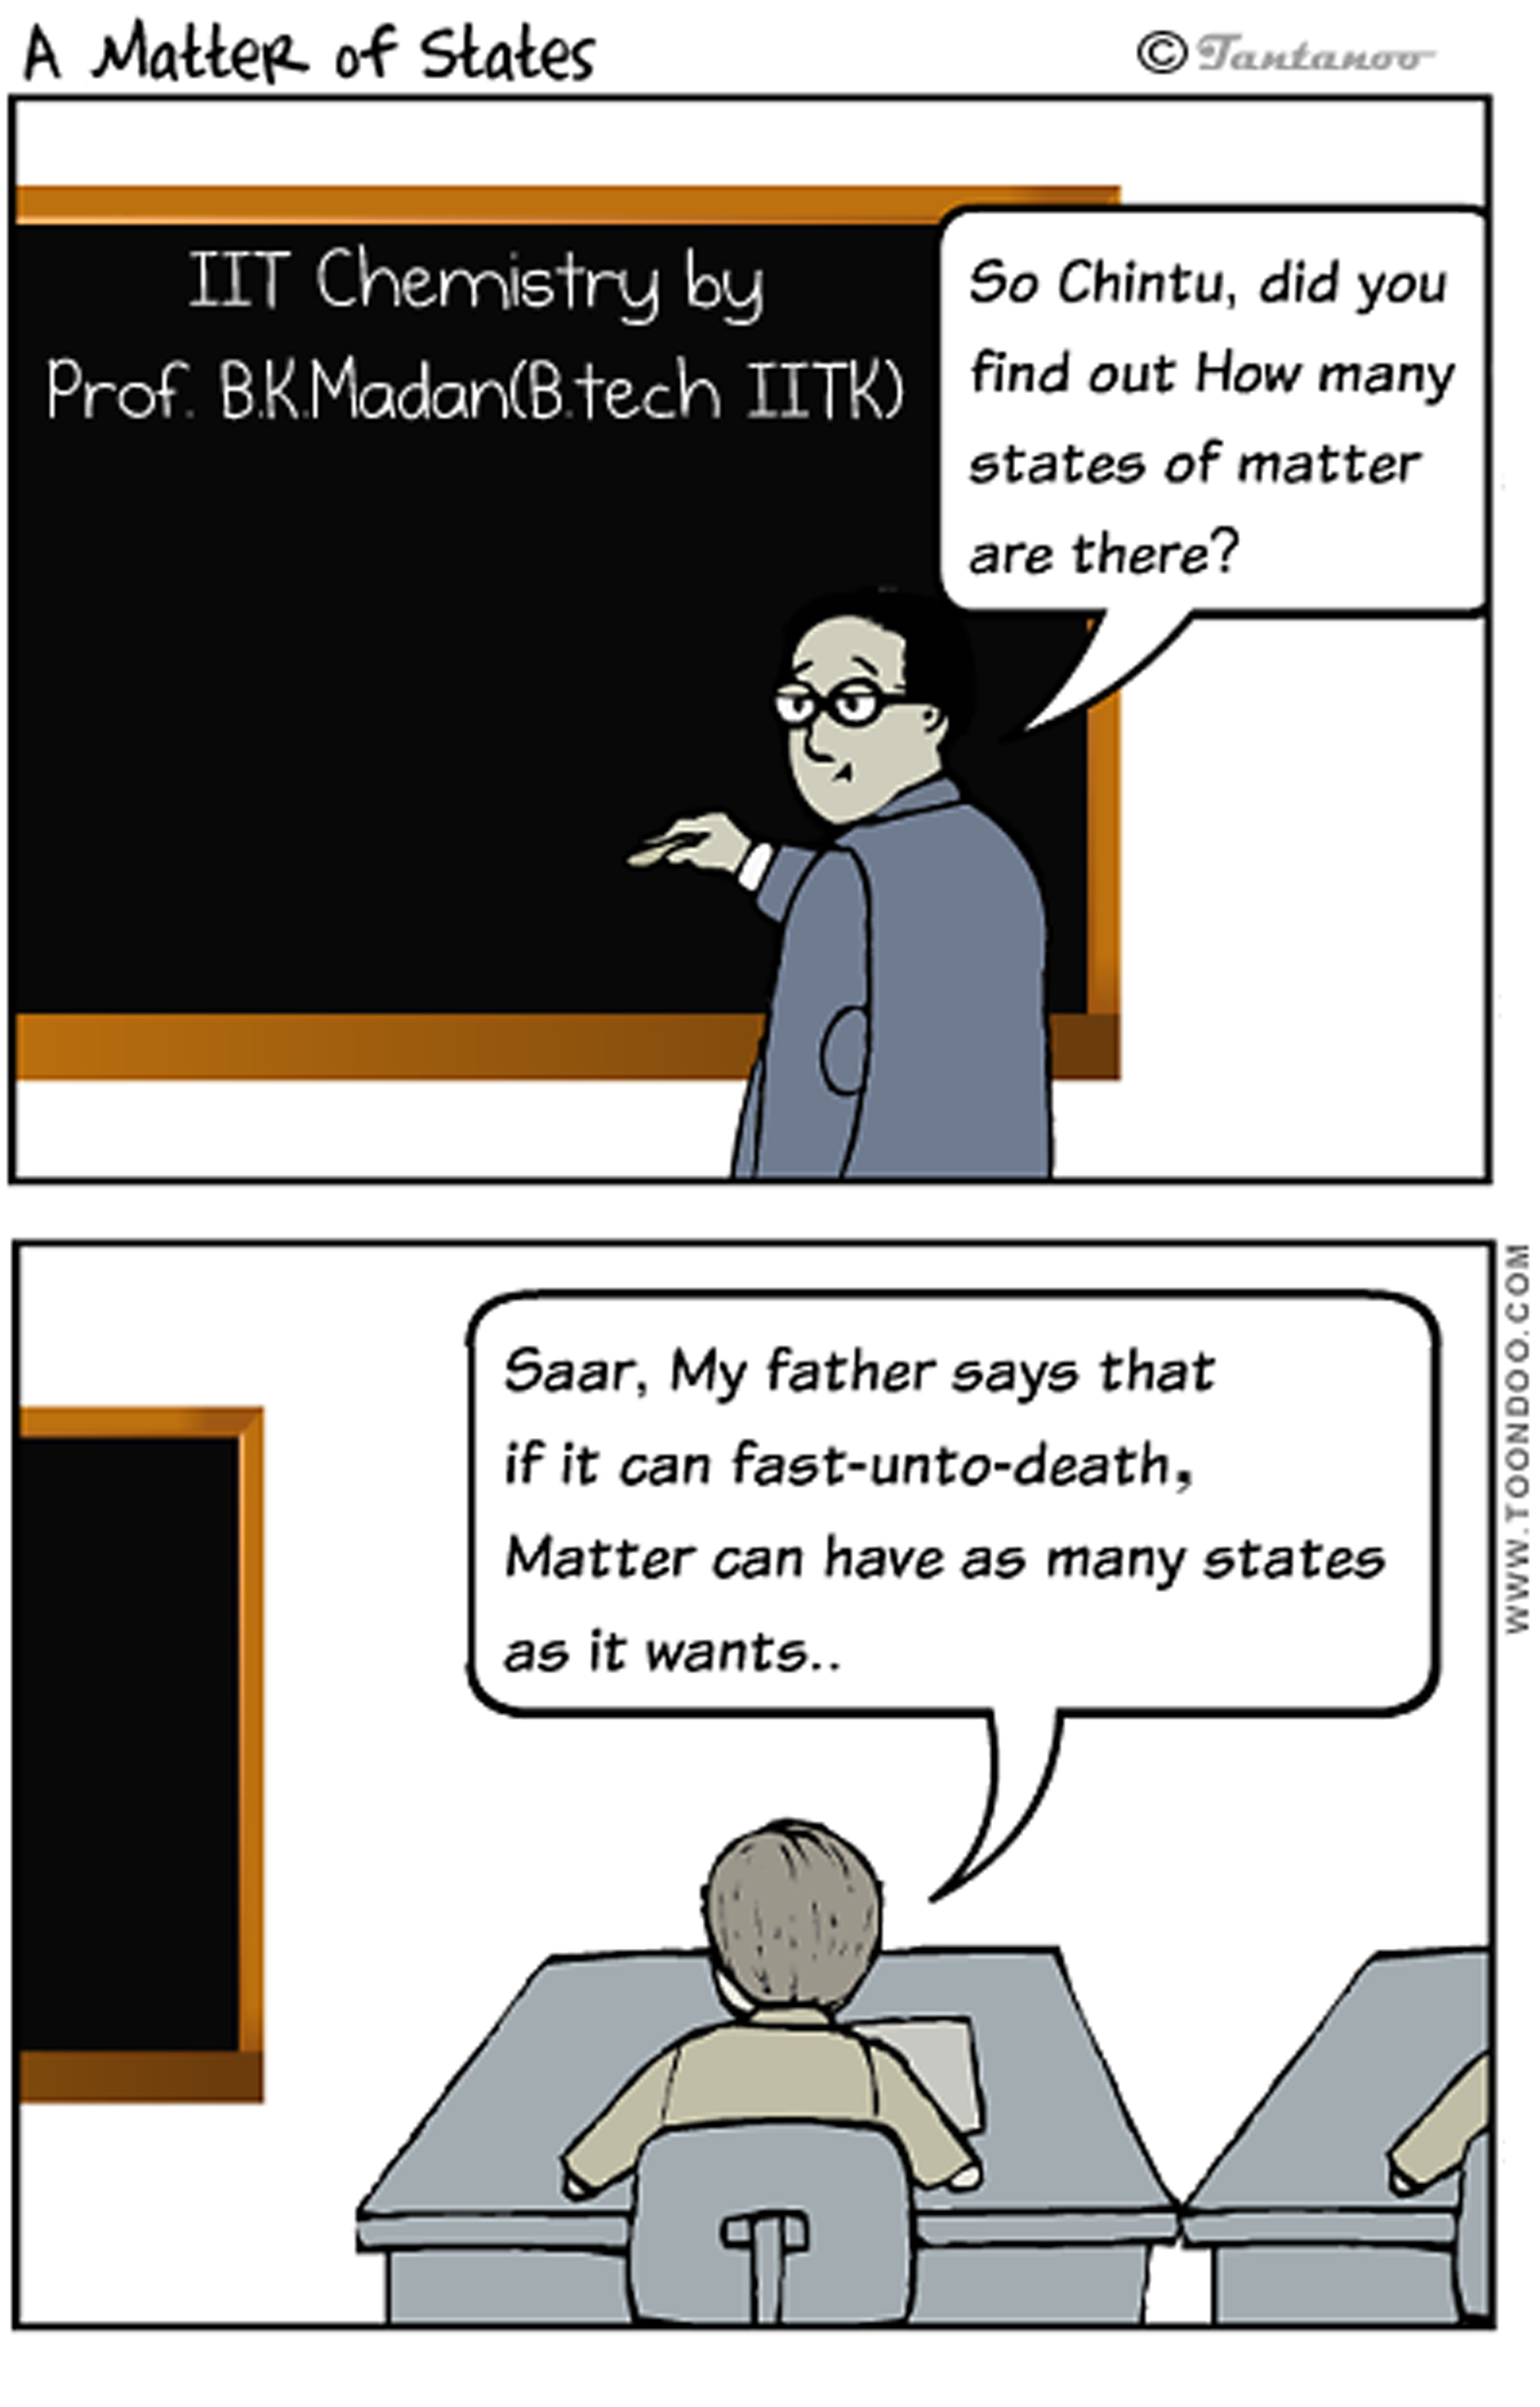 A Matter of States